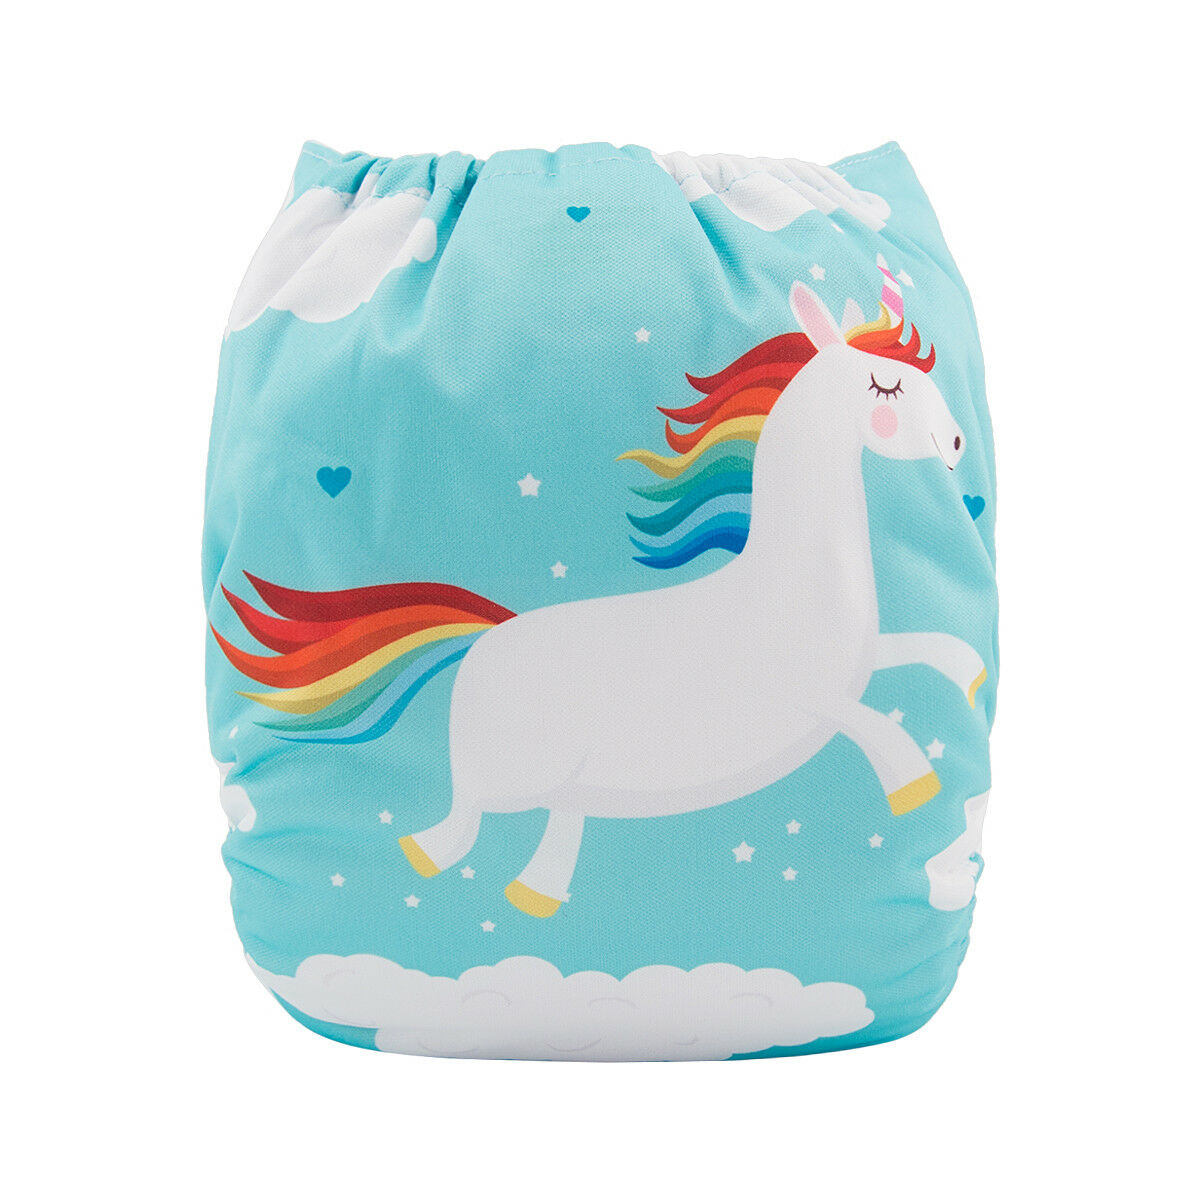 ALVABABY Reusable Baby Cloth Diapers OneSize Washable Pocket Nappies With Insert YD167